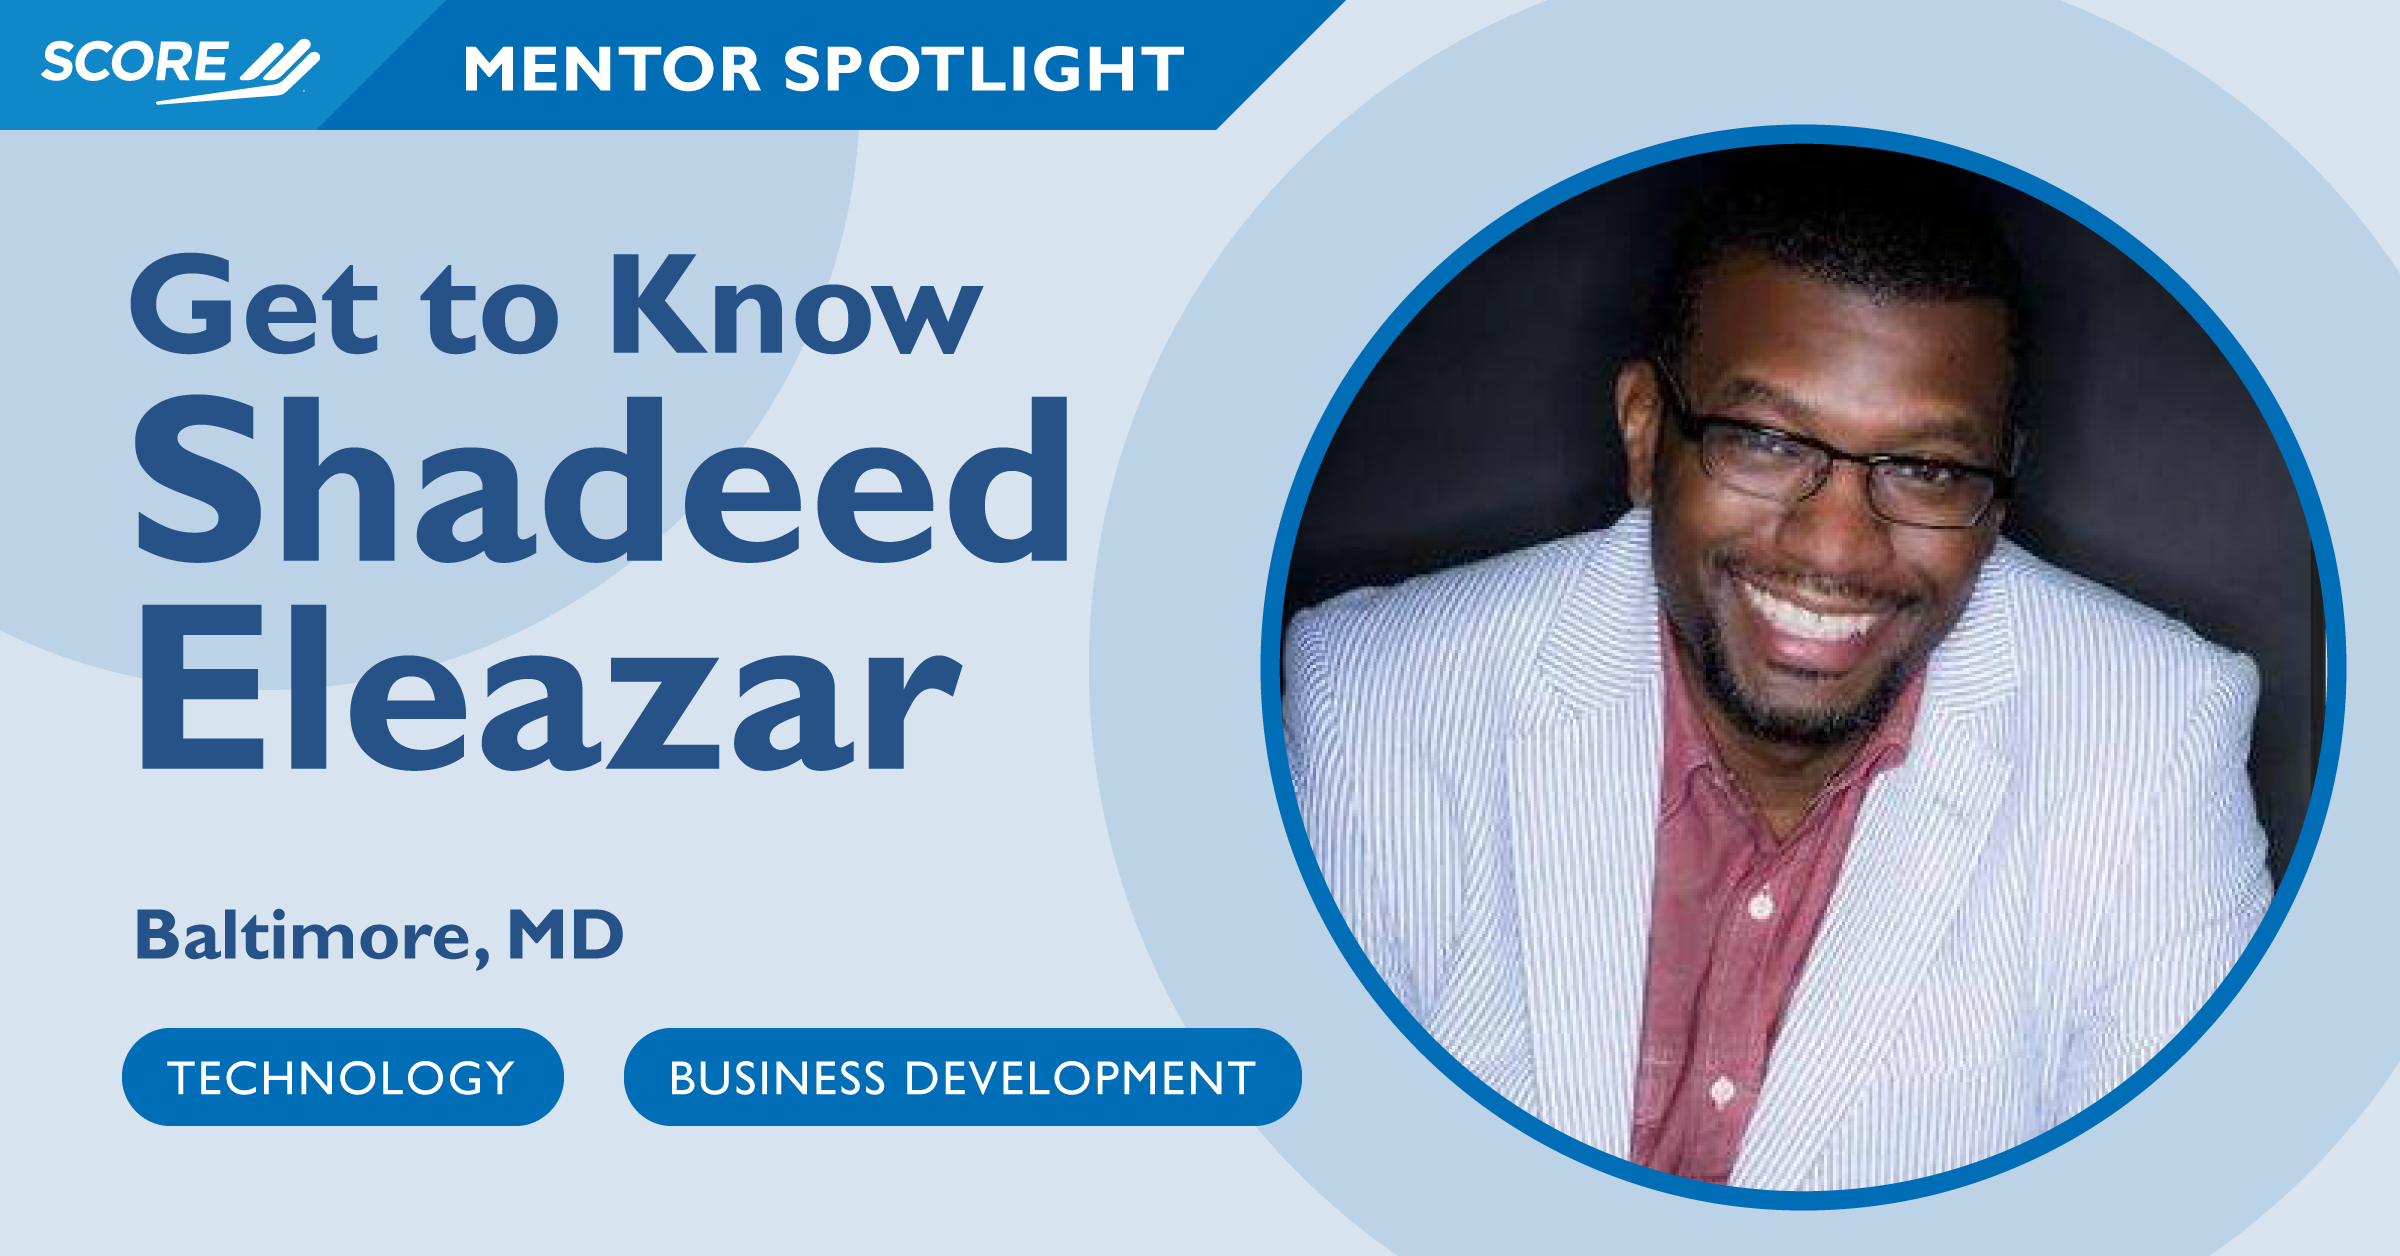 Mentor Spotlight - Shadeed Eleazar